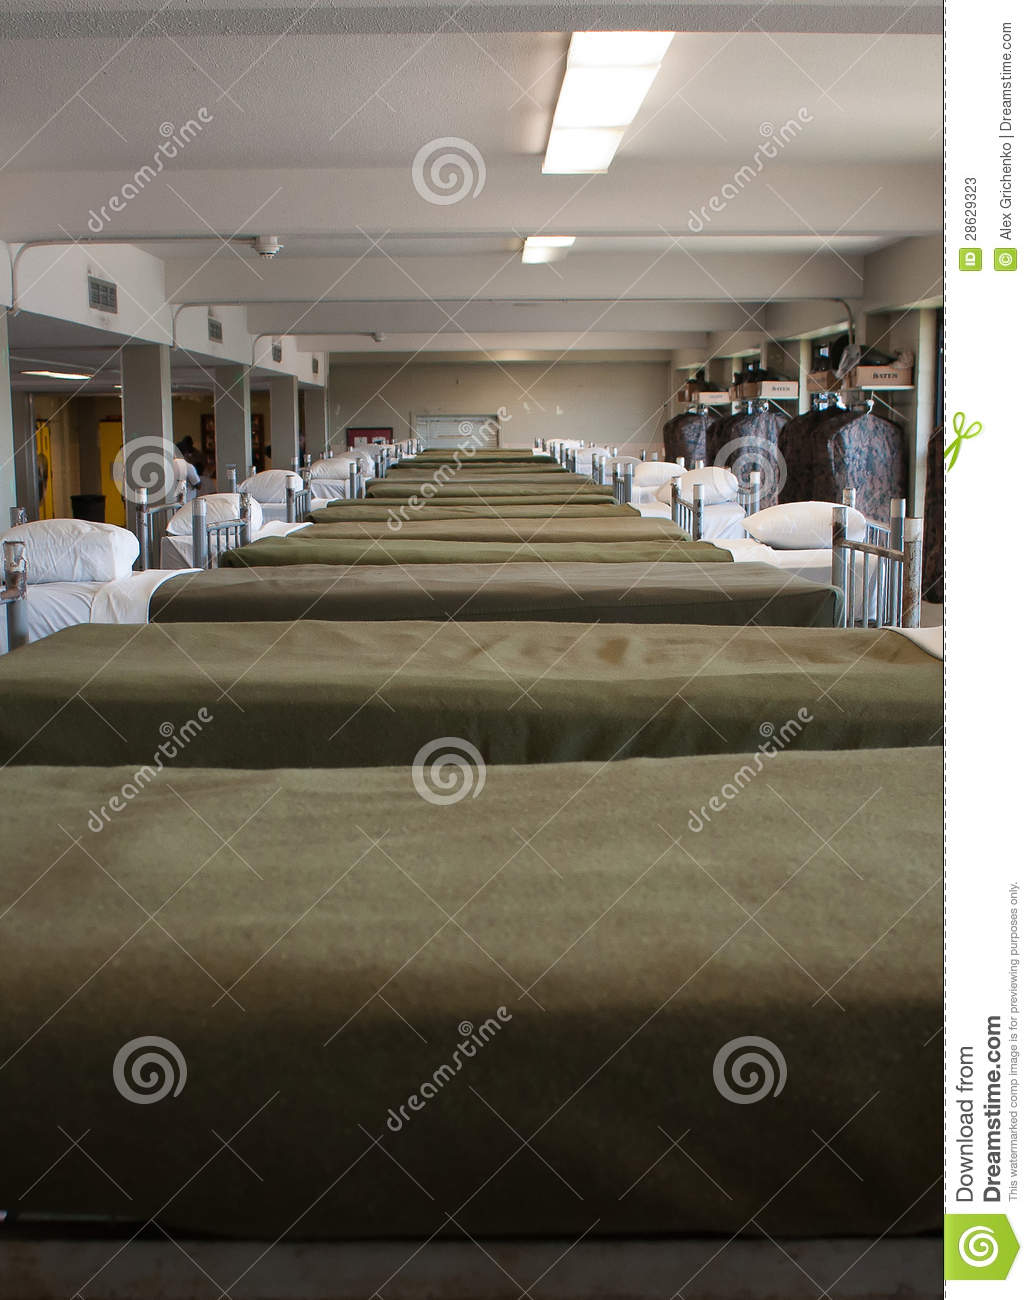 Military Bunk Beds Stock Image Image Of Corps Bunk